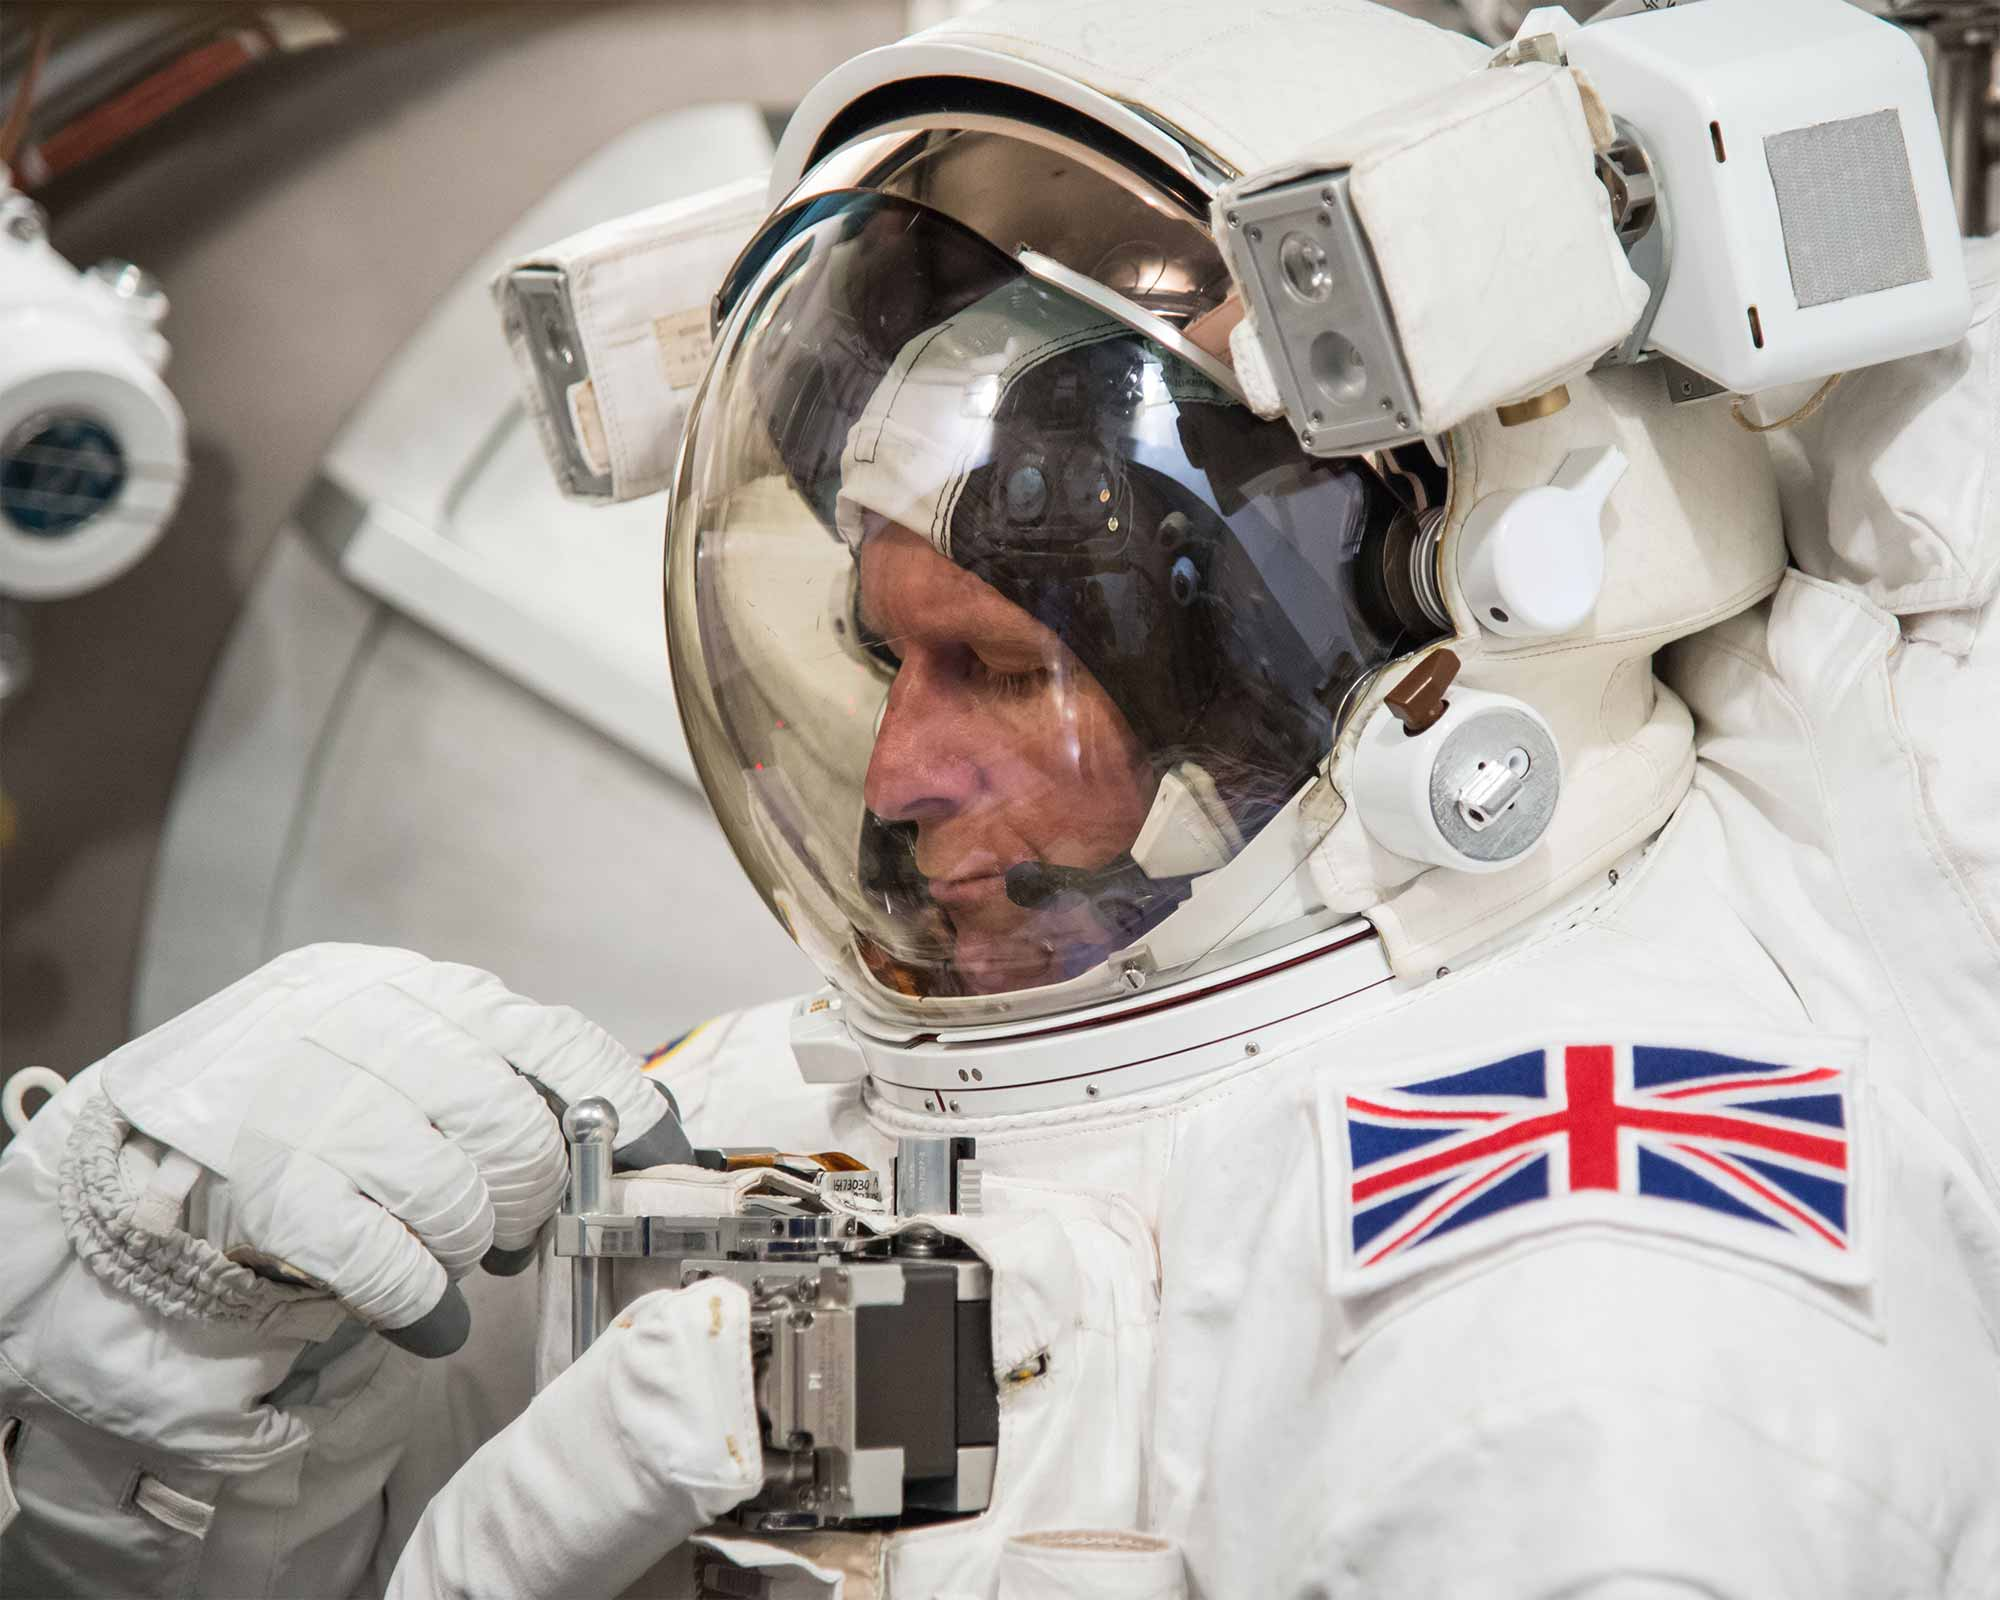 Tim Peake in space suit